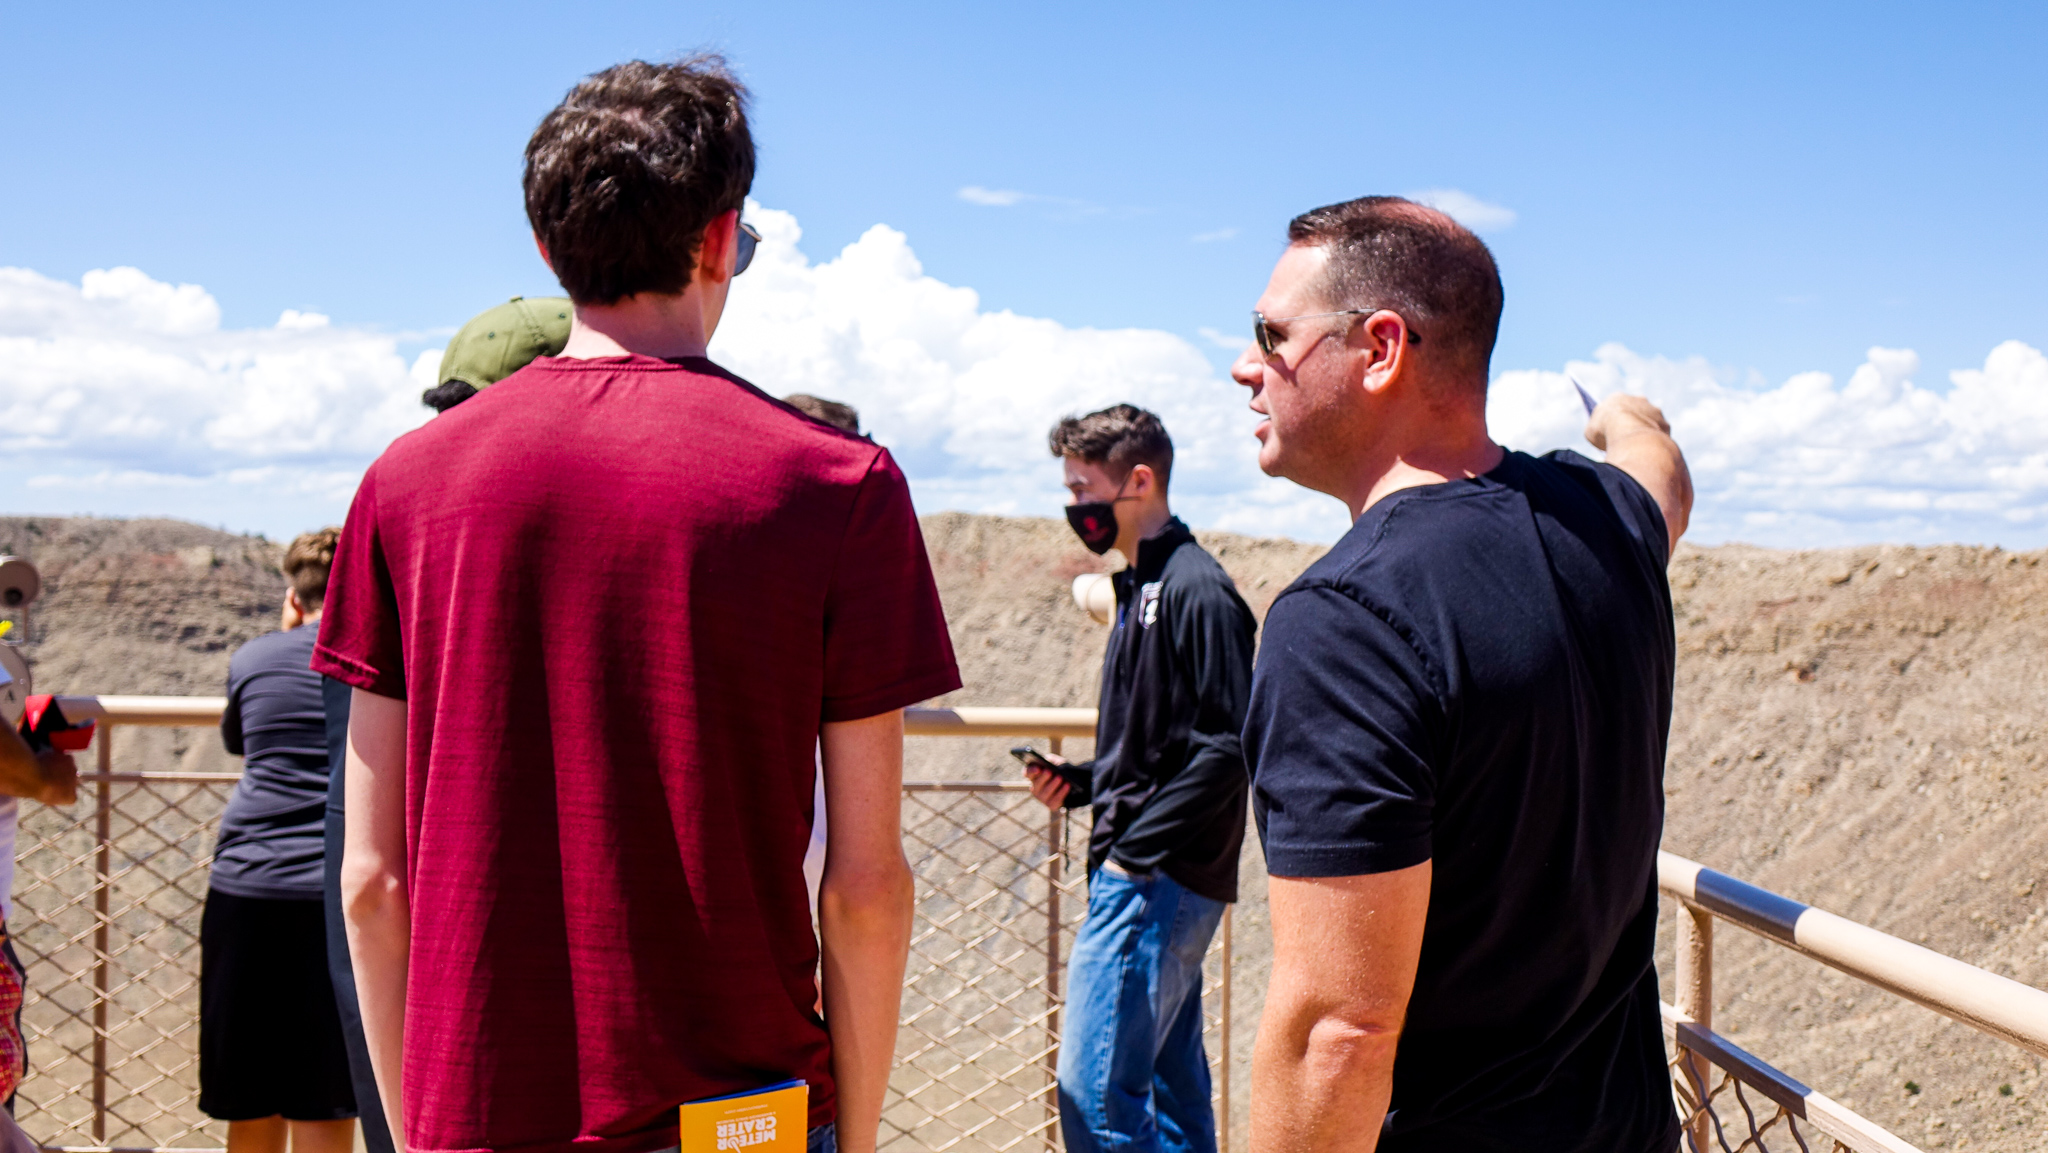 Meteor Crater Visitor Center is one of the most popular attractions in Northern Arizona